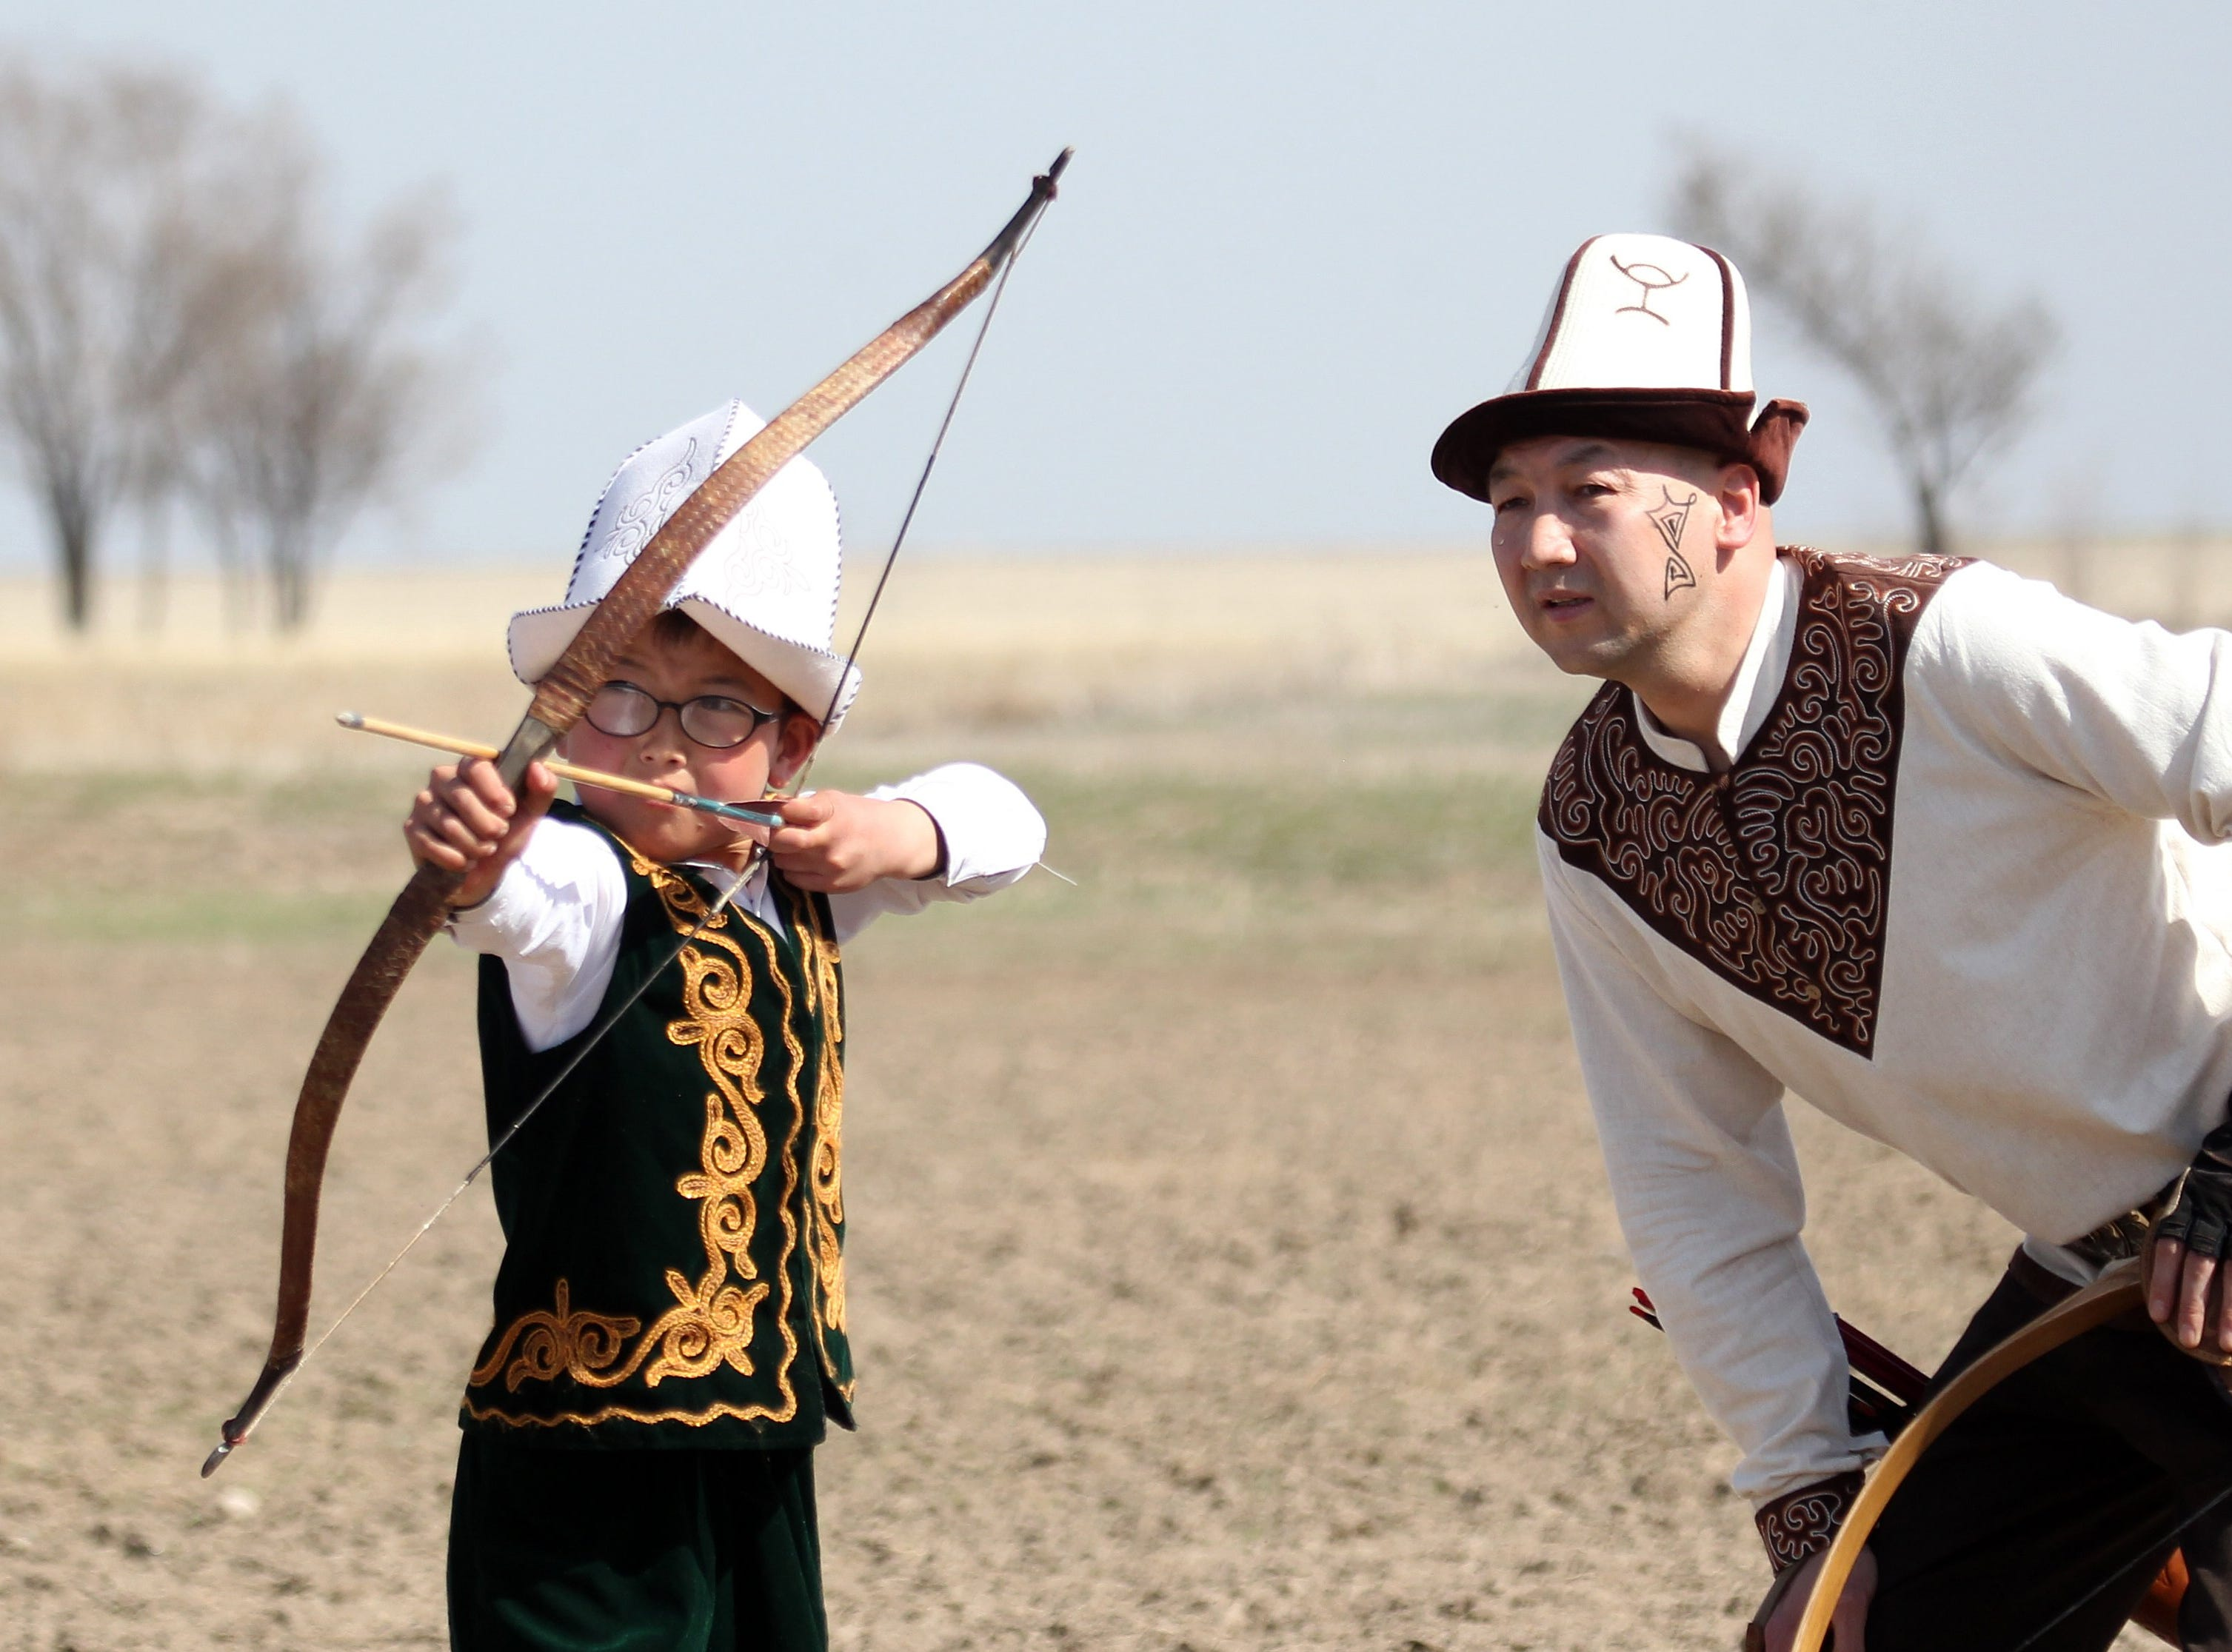 March 21, 2018: A Kyrgyz boy, wearing national attire, shoots bow and arrow at the Salburun bow hunting festival in Bishkek, Kyrgyzstan.